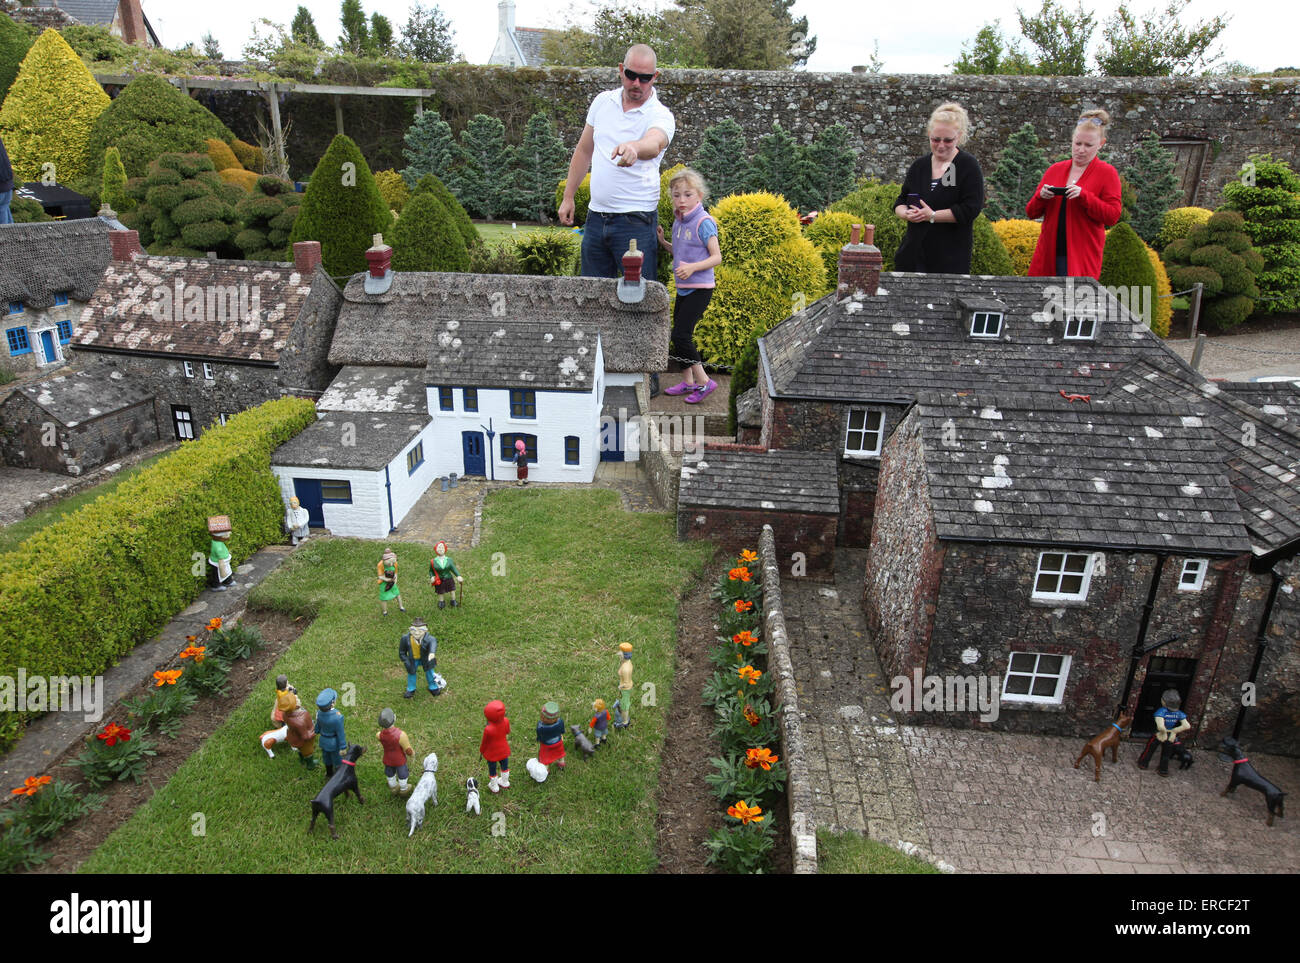 Tourists appear to be giants as they visit to The Model Village in Godshill on the Isle of Wight - Stock Image